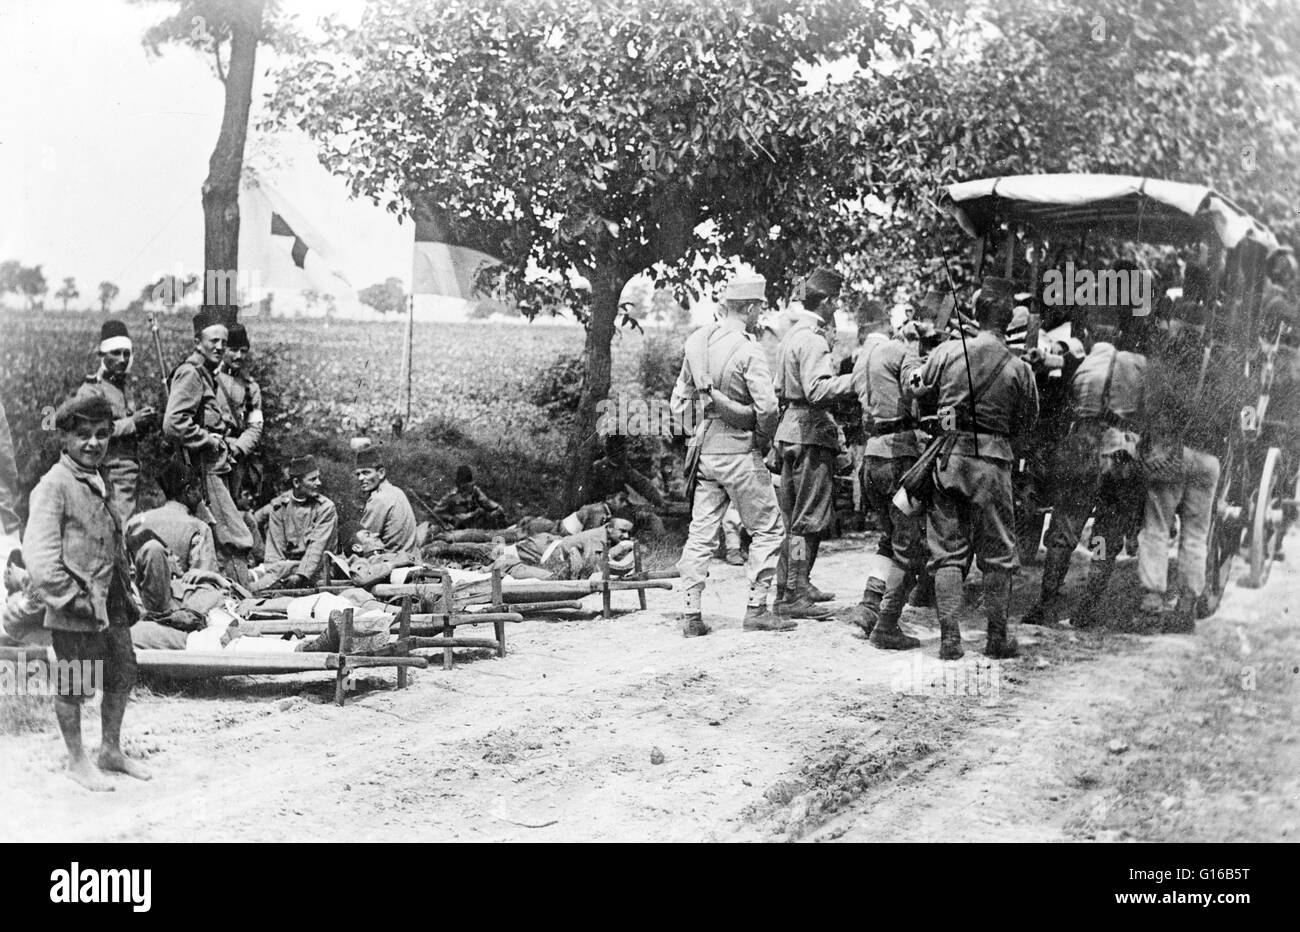 Austrian soldiers with an ambulance in the road during World War I. The Austro-Hungarian Army was the ground force - Stock Image